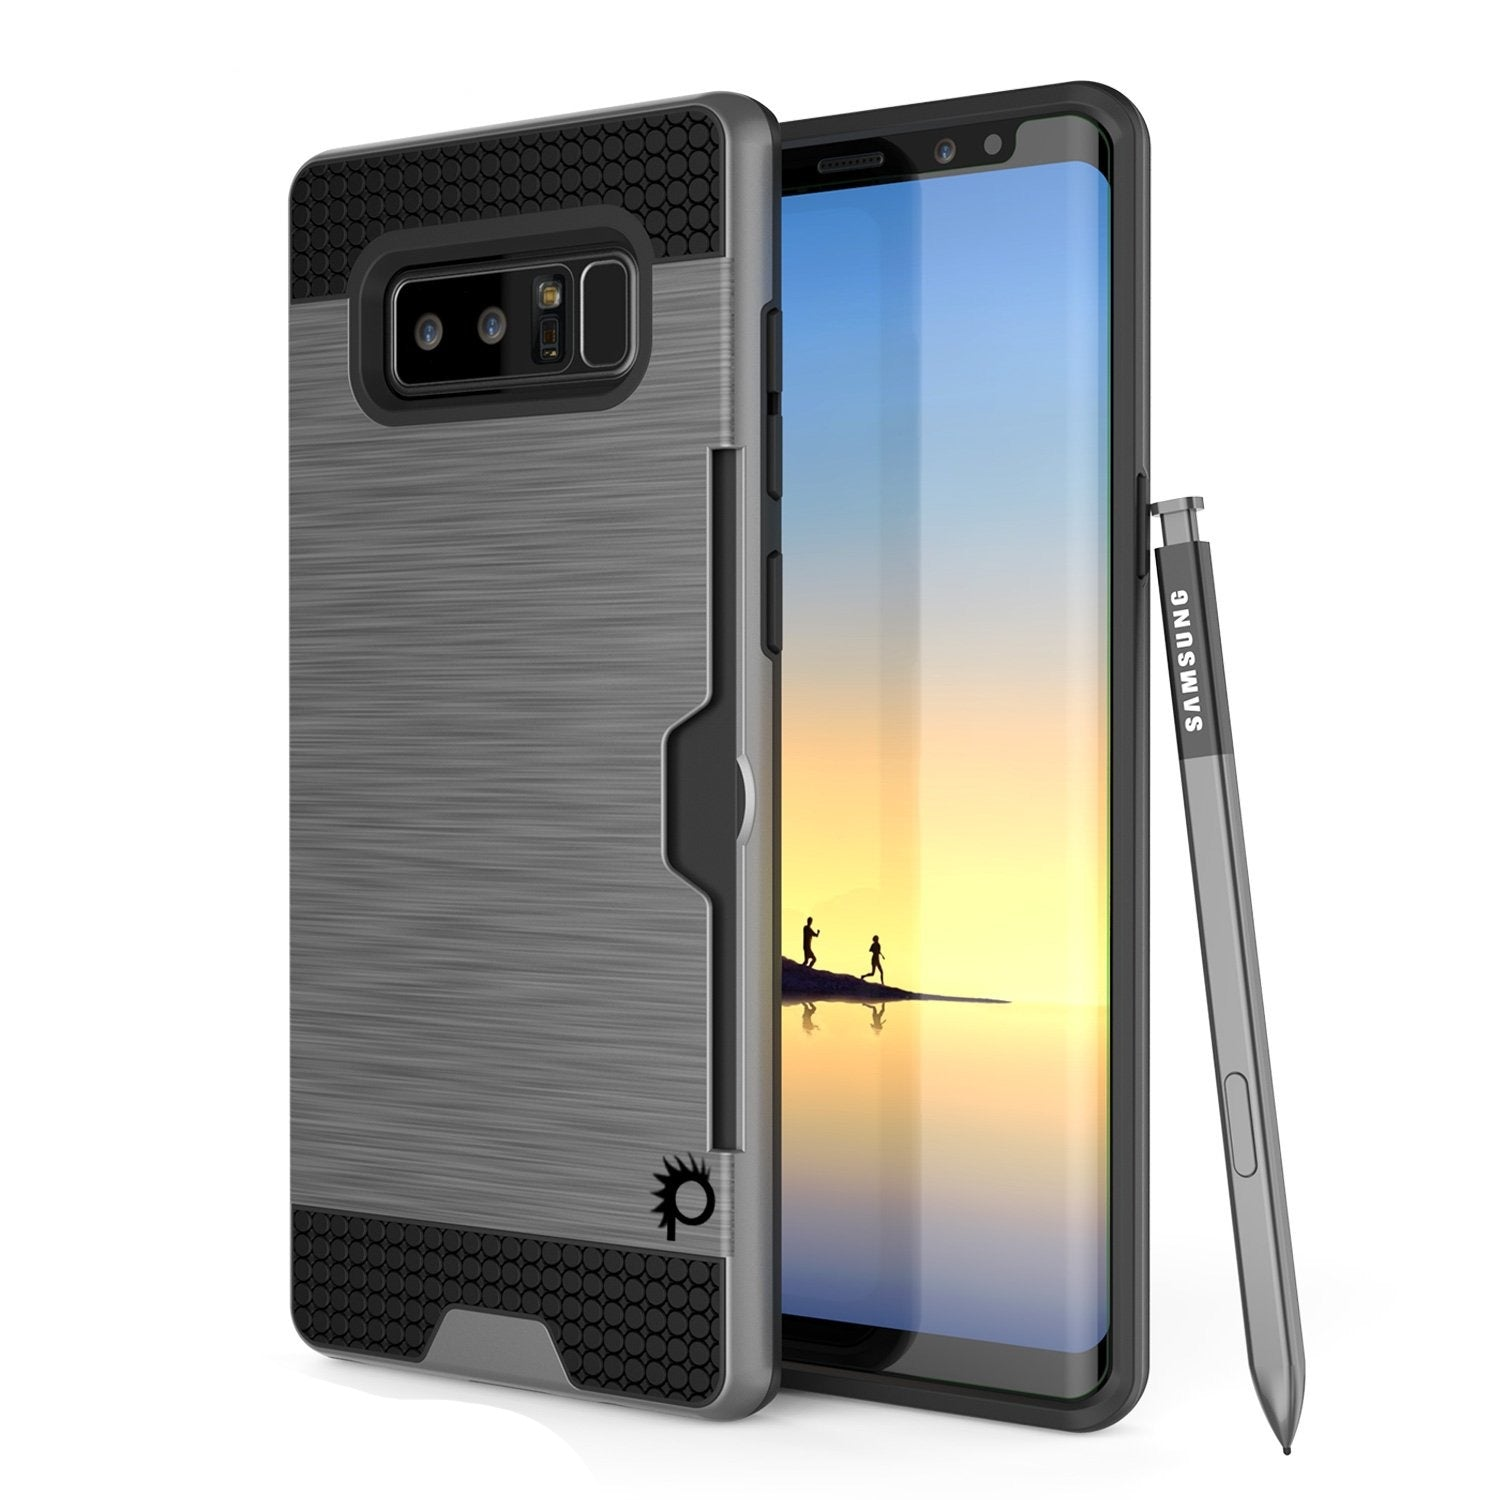 Galaxy Note 8 Dual-Layer Ultra Screen Protector Case W/ Card Slot [Grey]